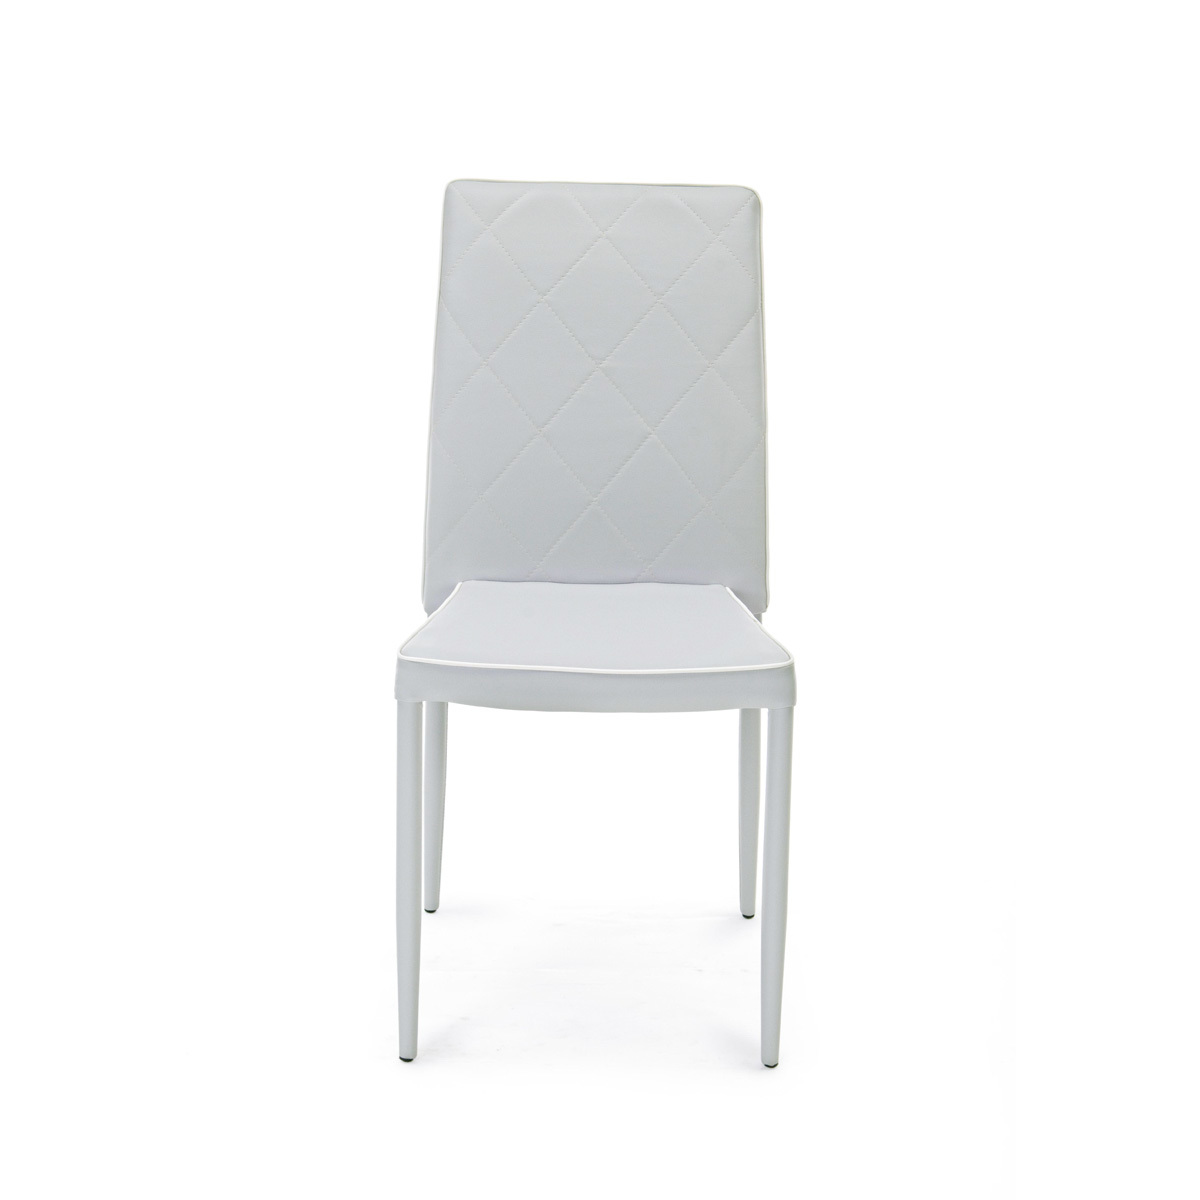 Photos 2: Bizzotto Chair covered in eco-leather - gray 0730787